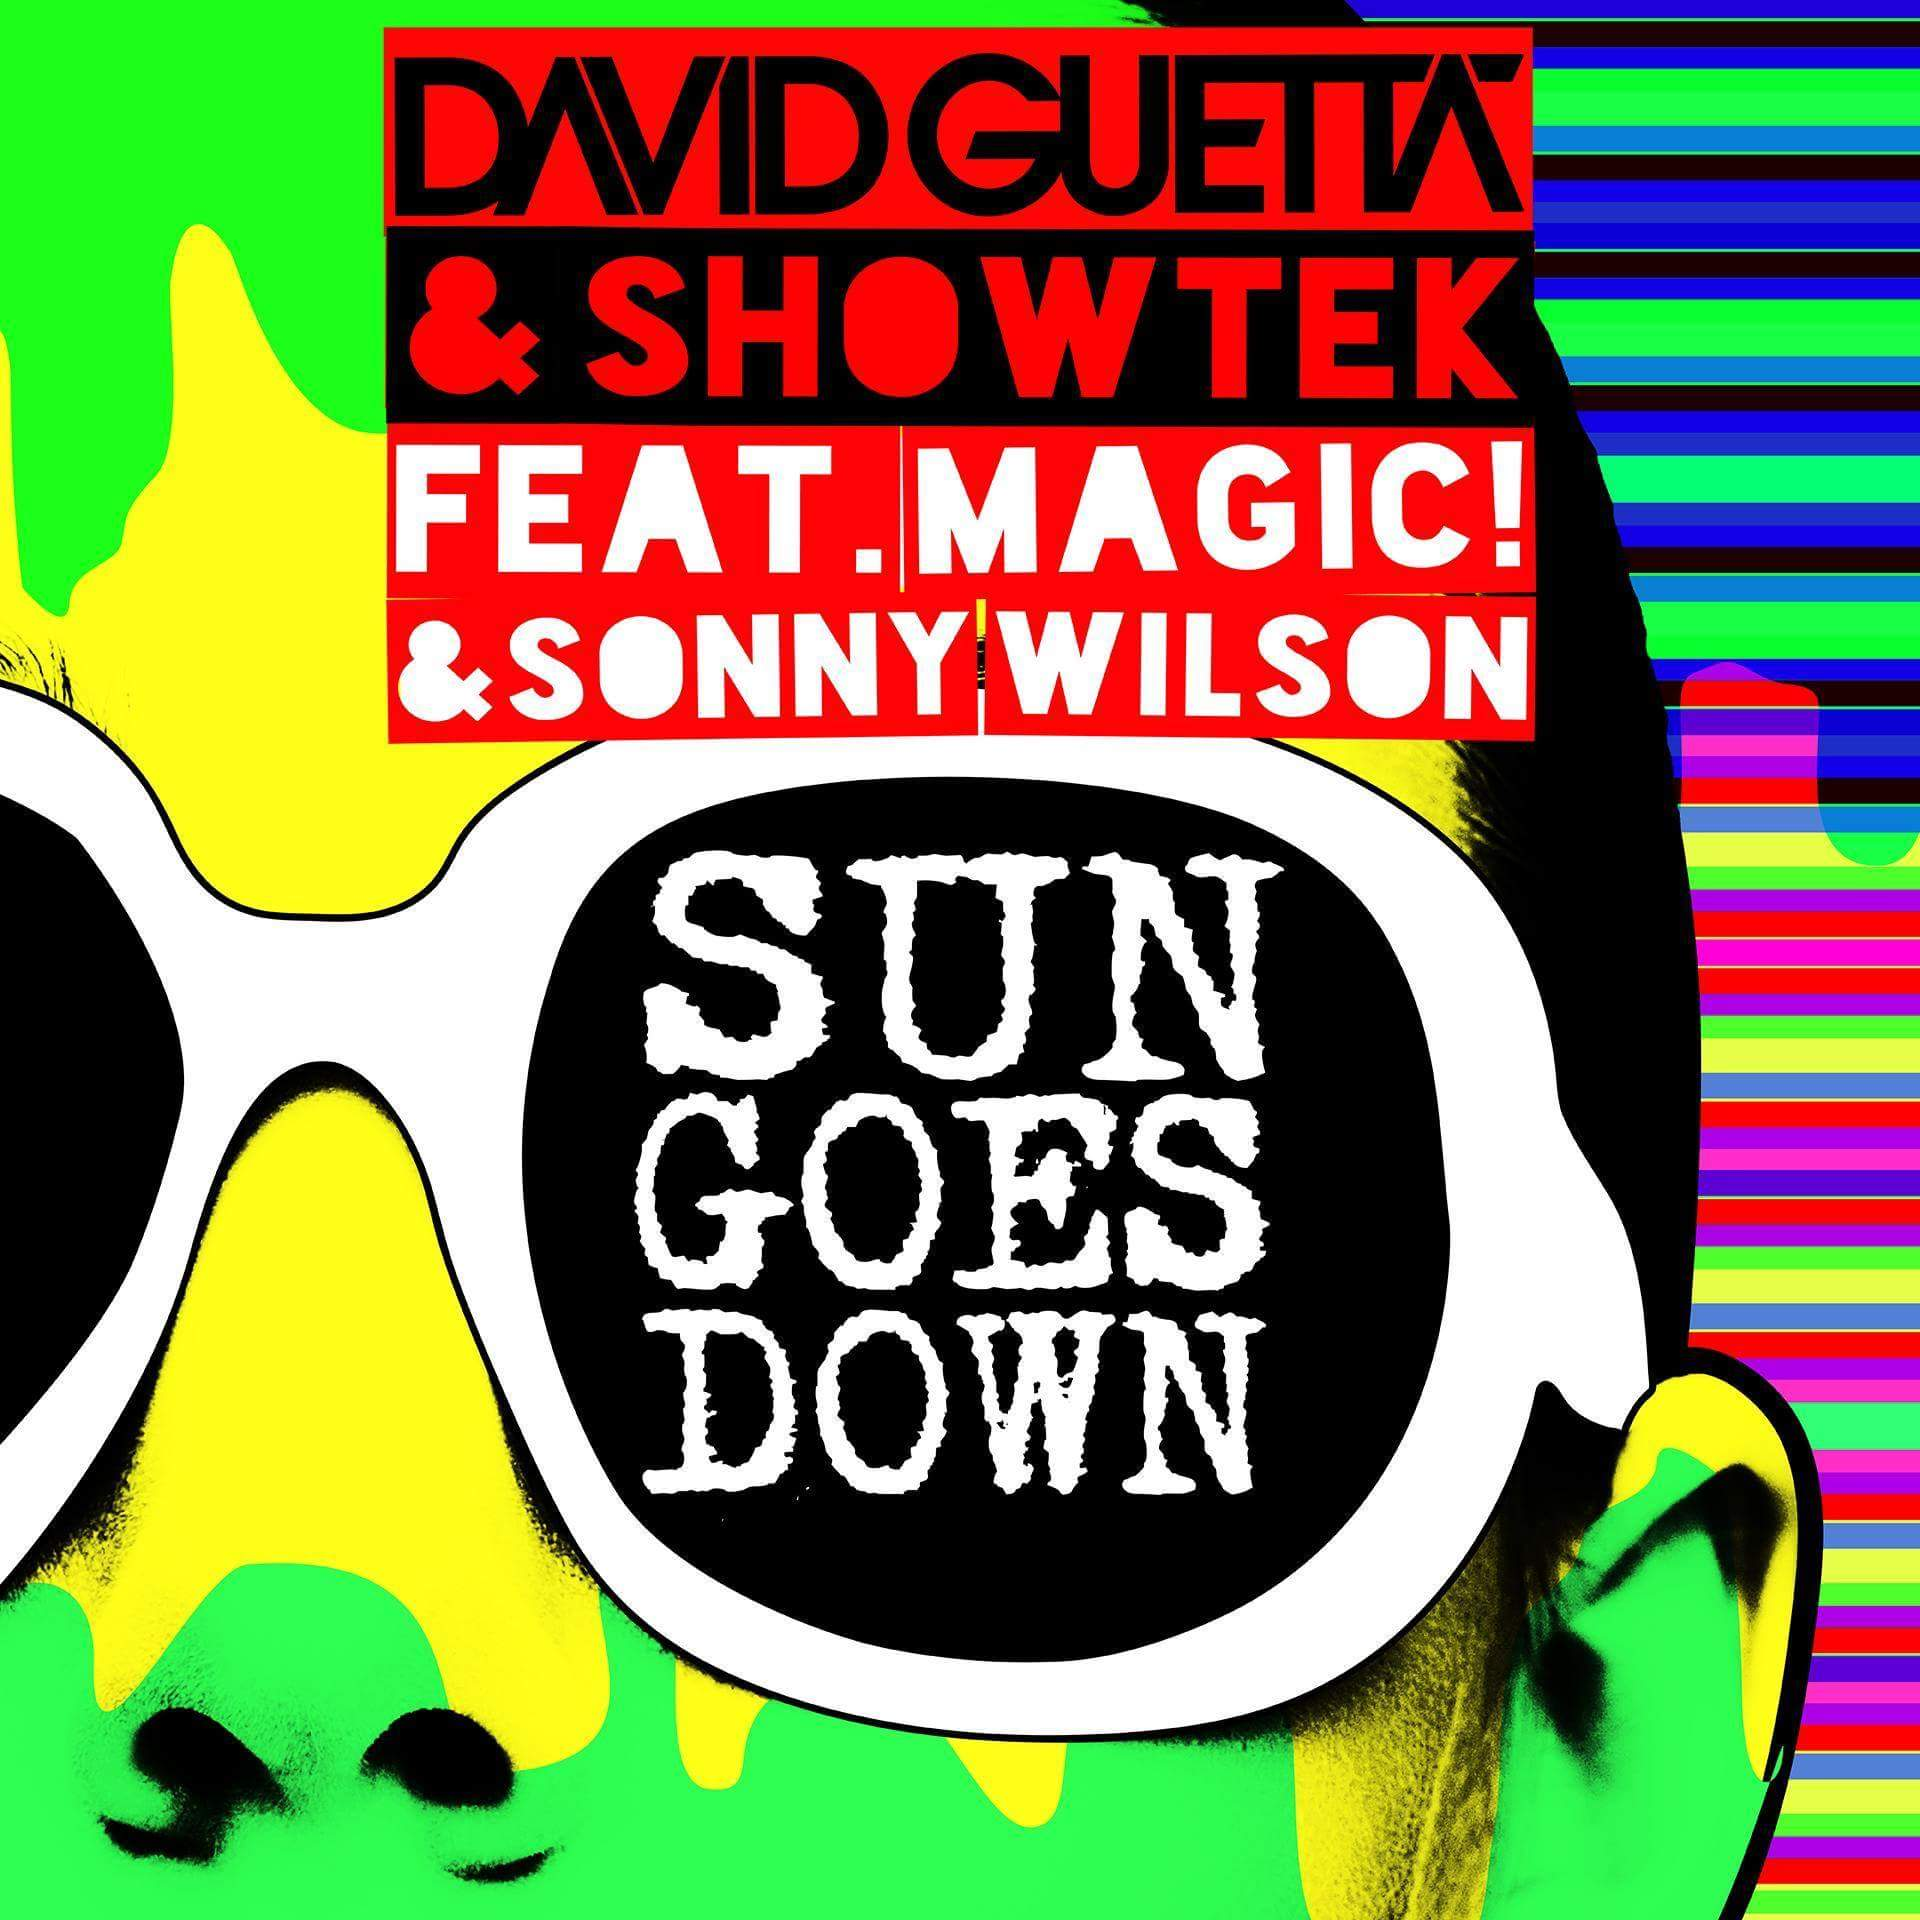 David Guetta & Showtek – Sun Goes Down ft Magic! & Sonny Wilson